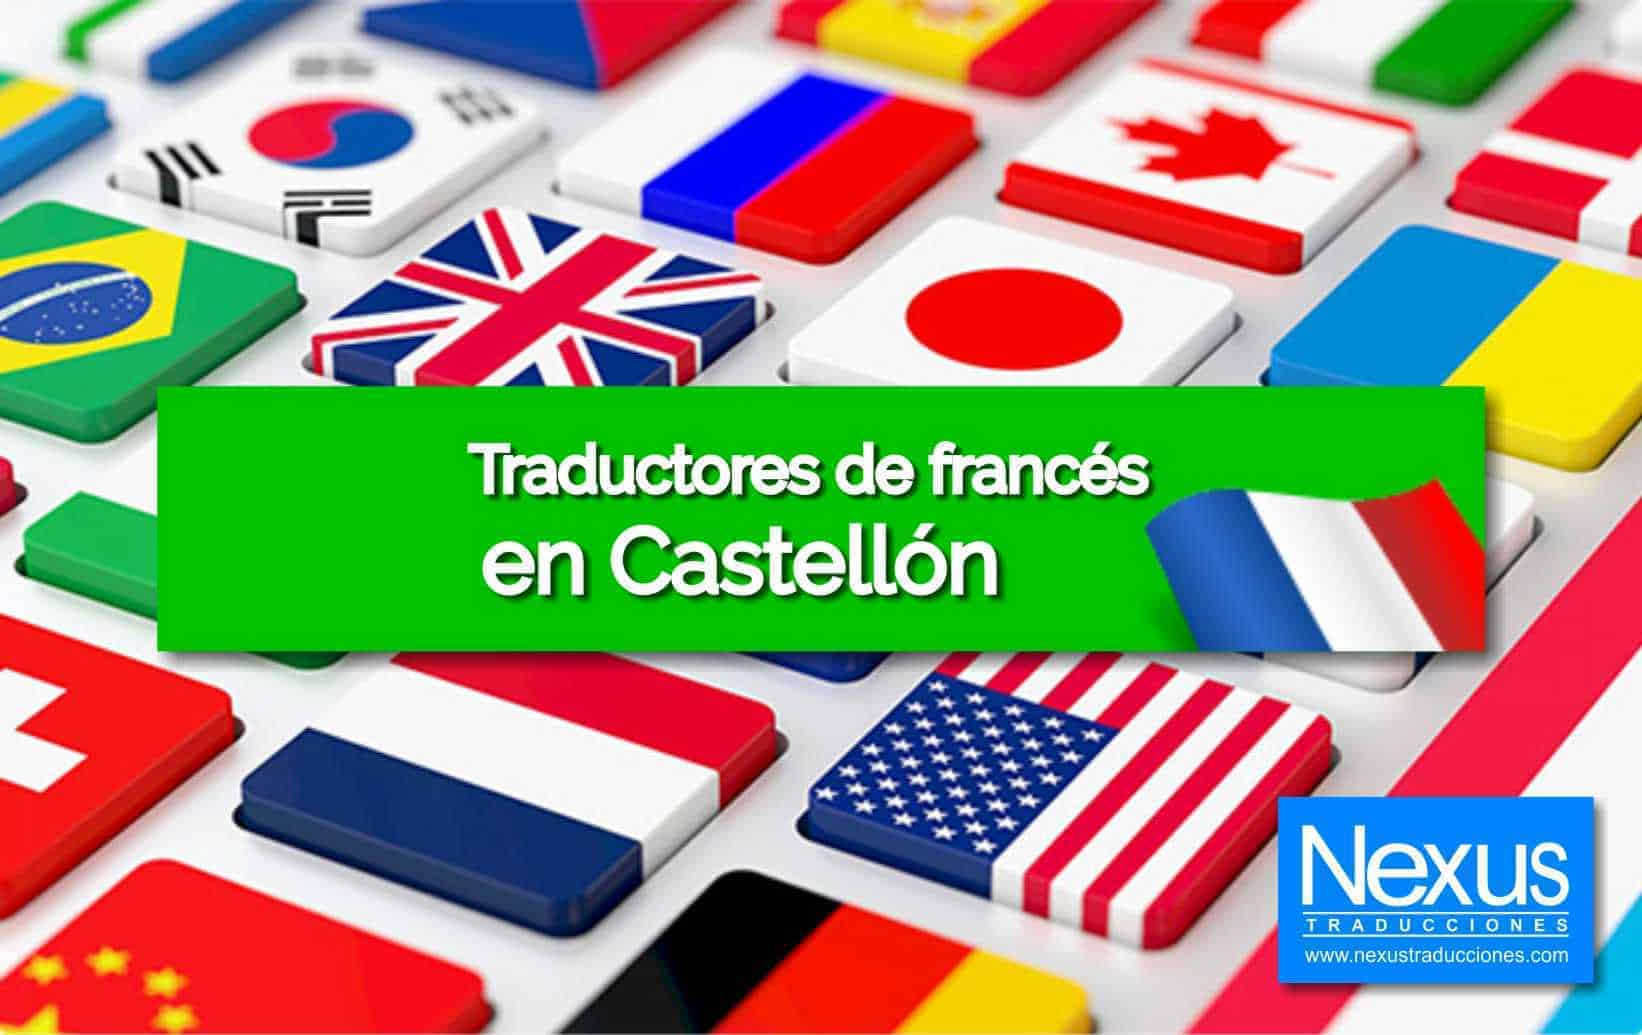 French translations in Castellon